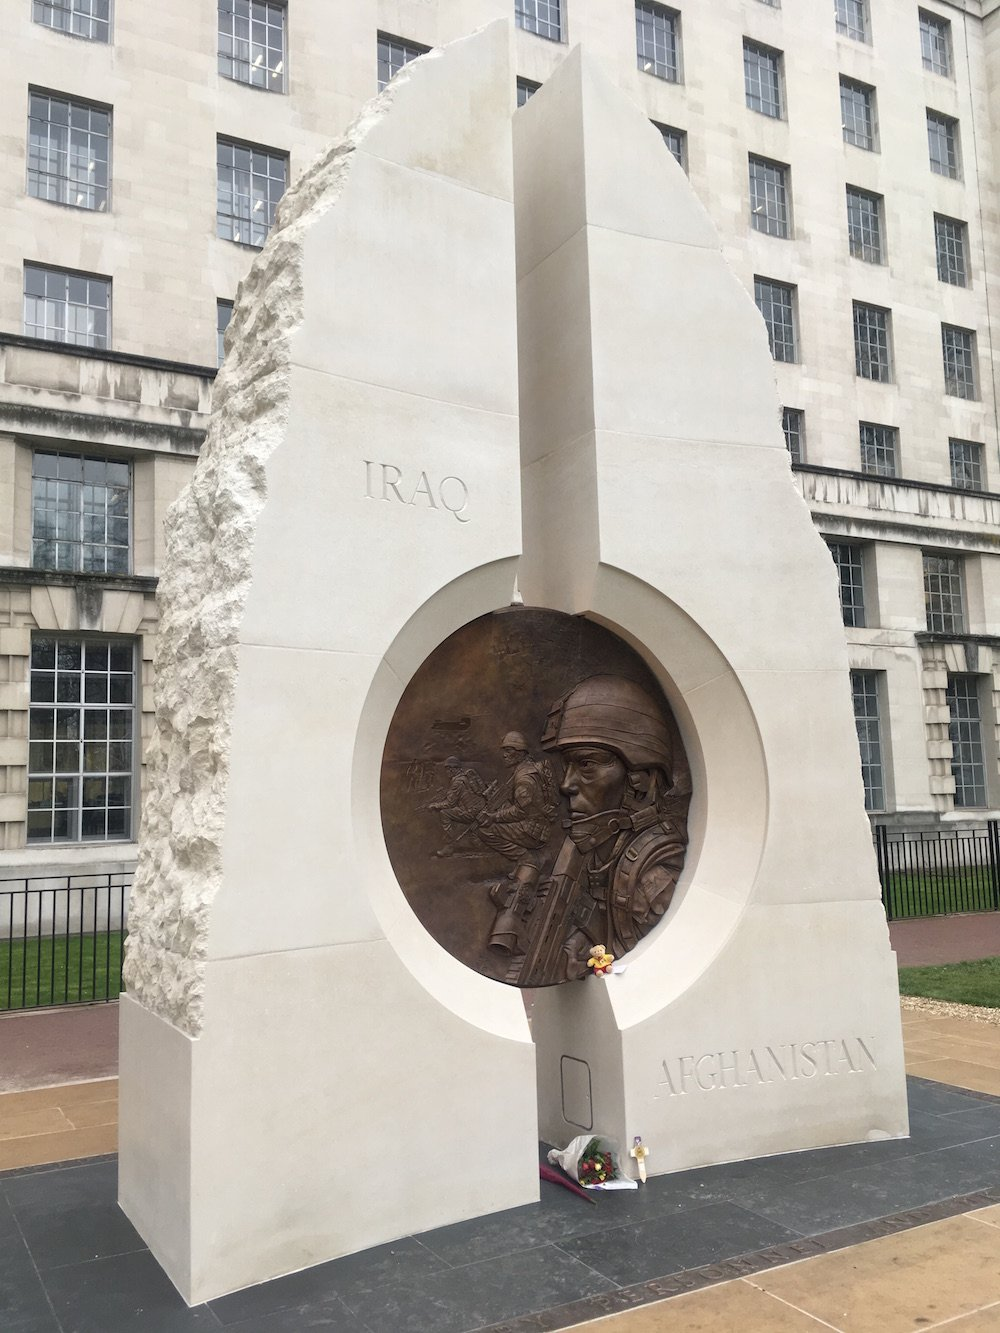 Paul Day's memorial to the British invasions of Afghanistan and Iraq. Image: No Swan So Fine under a CC licence